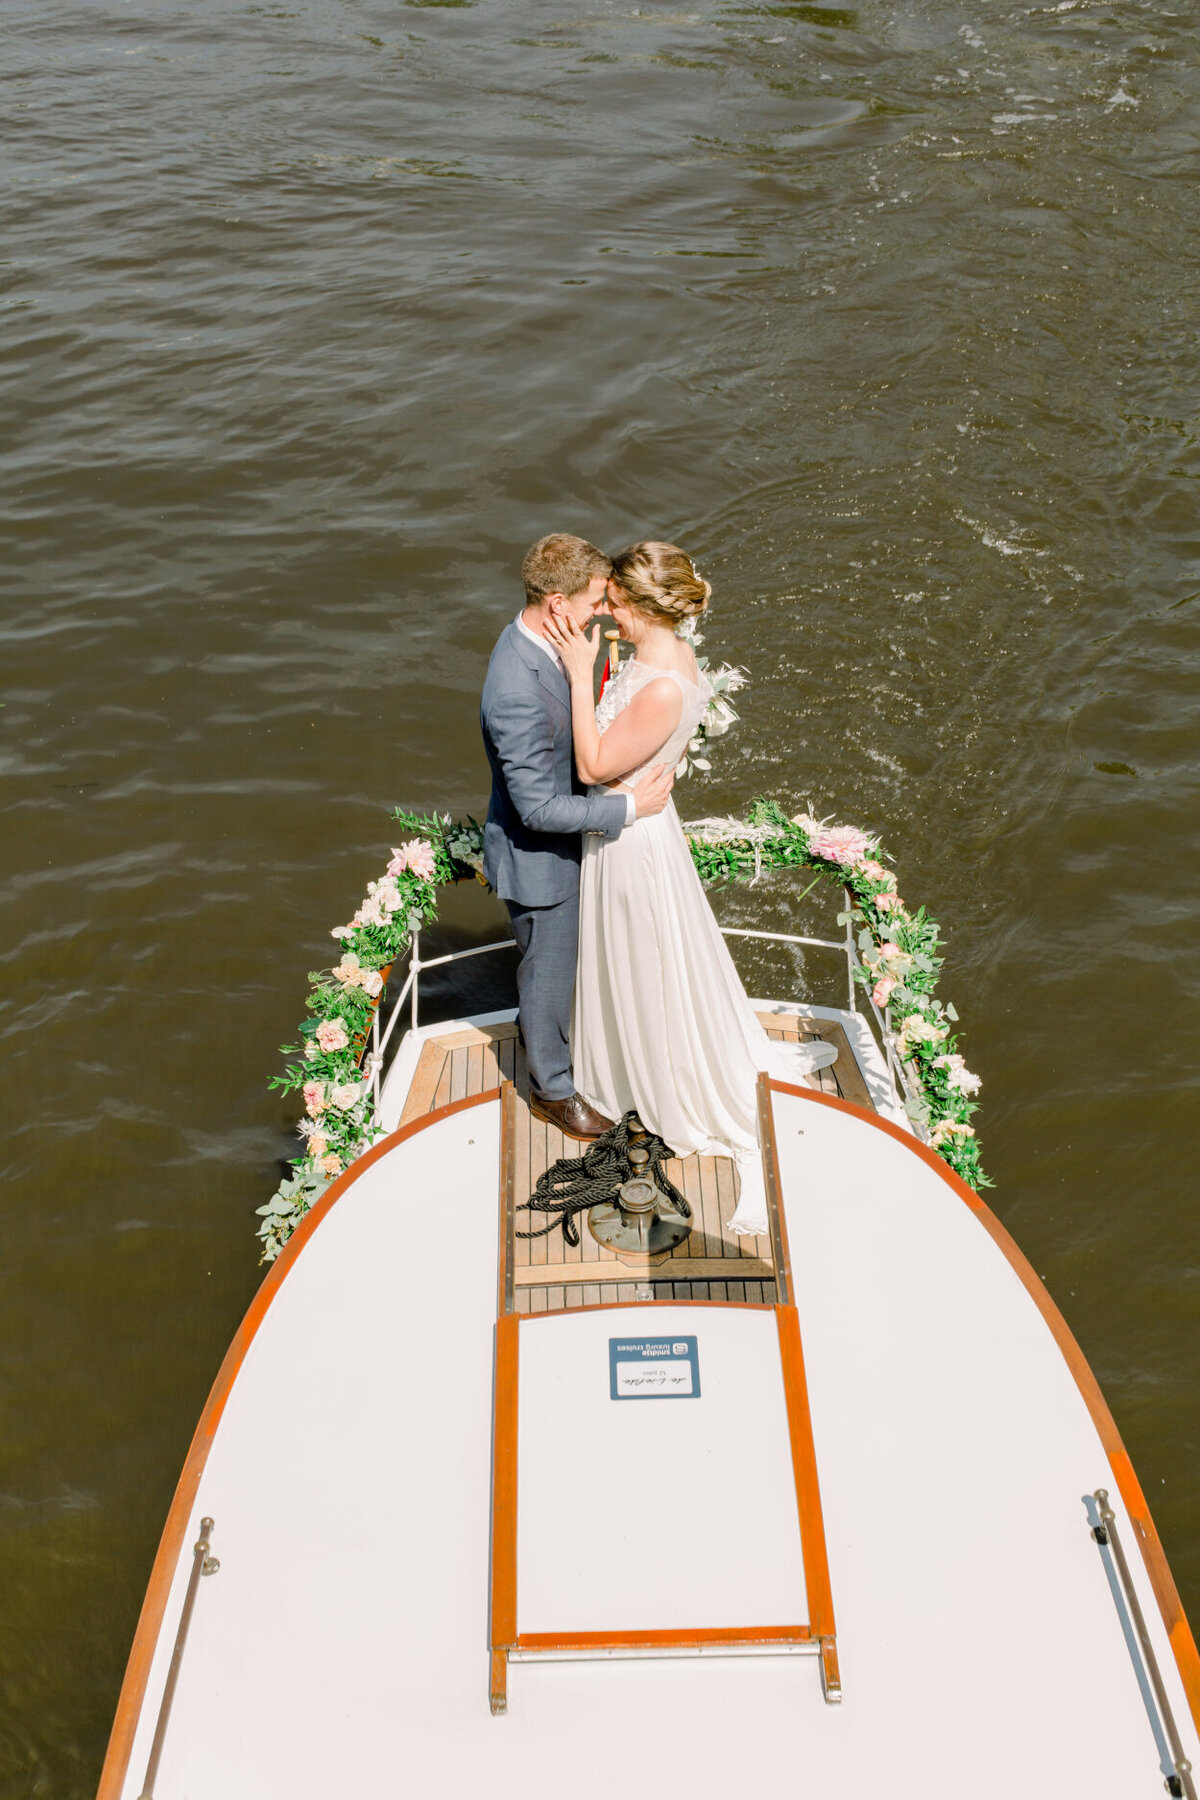 Wedding couple on a canal boat tour in Amsterdam for a photo shoot organized by Lovely & Planned